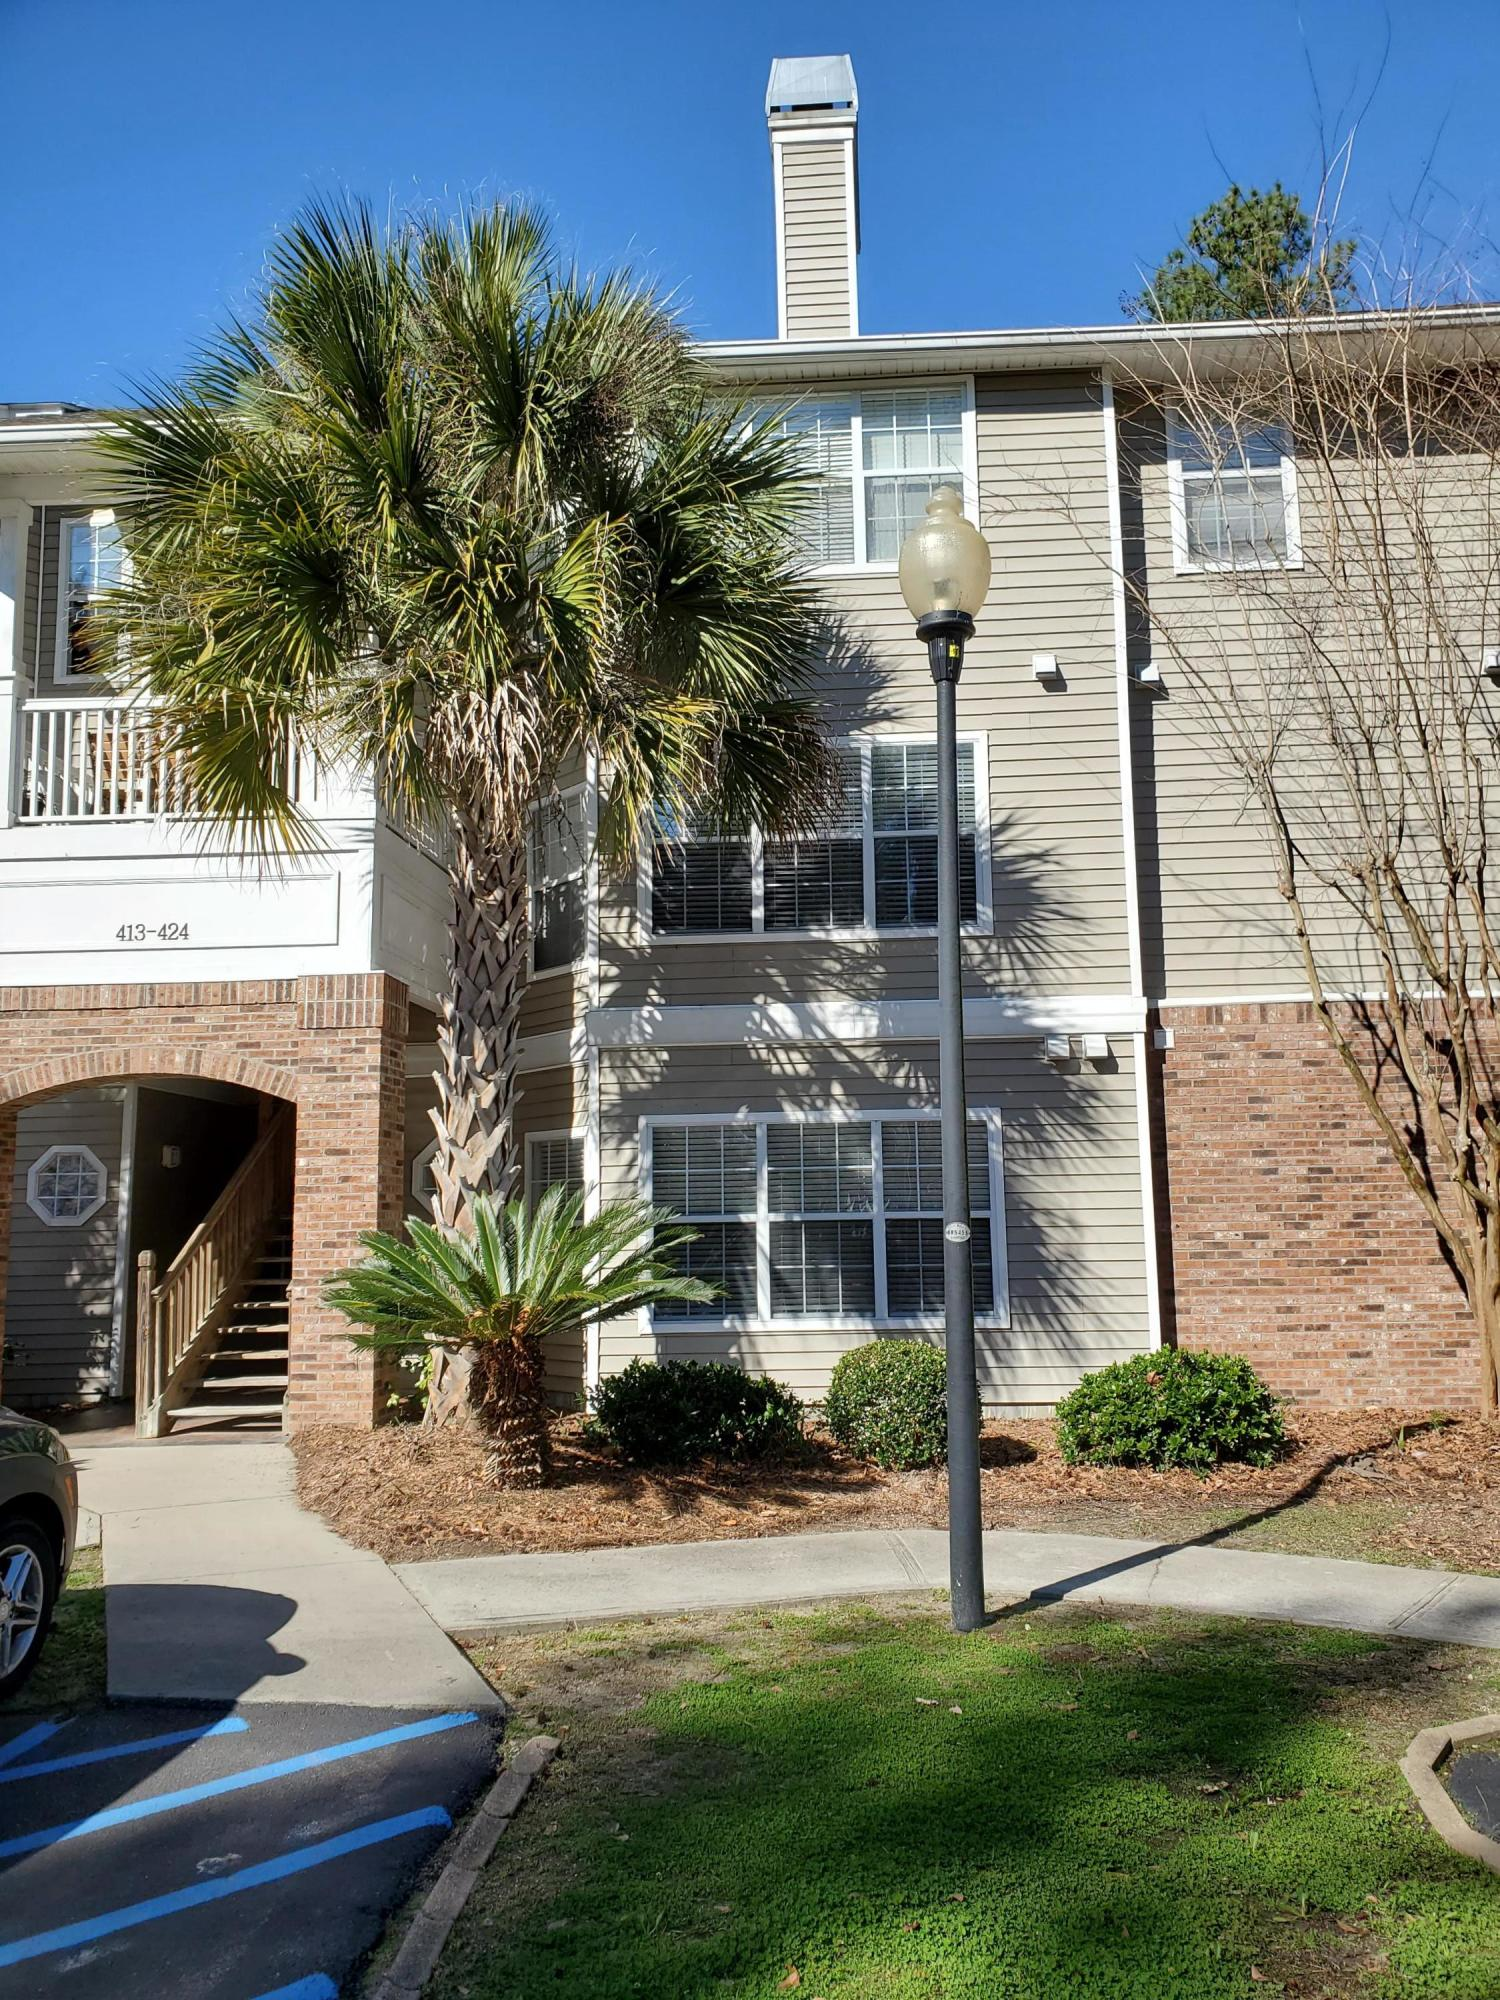 Midland Terrace Homes For Sale - 188 Midland Parkway 421, Summerville, SC - 16